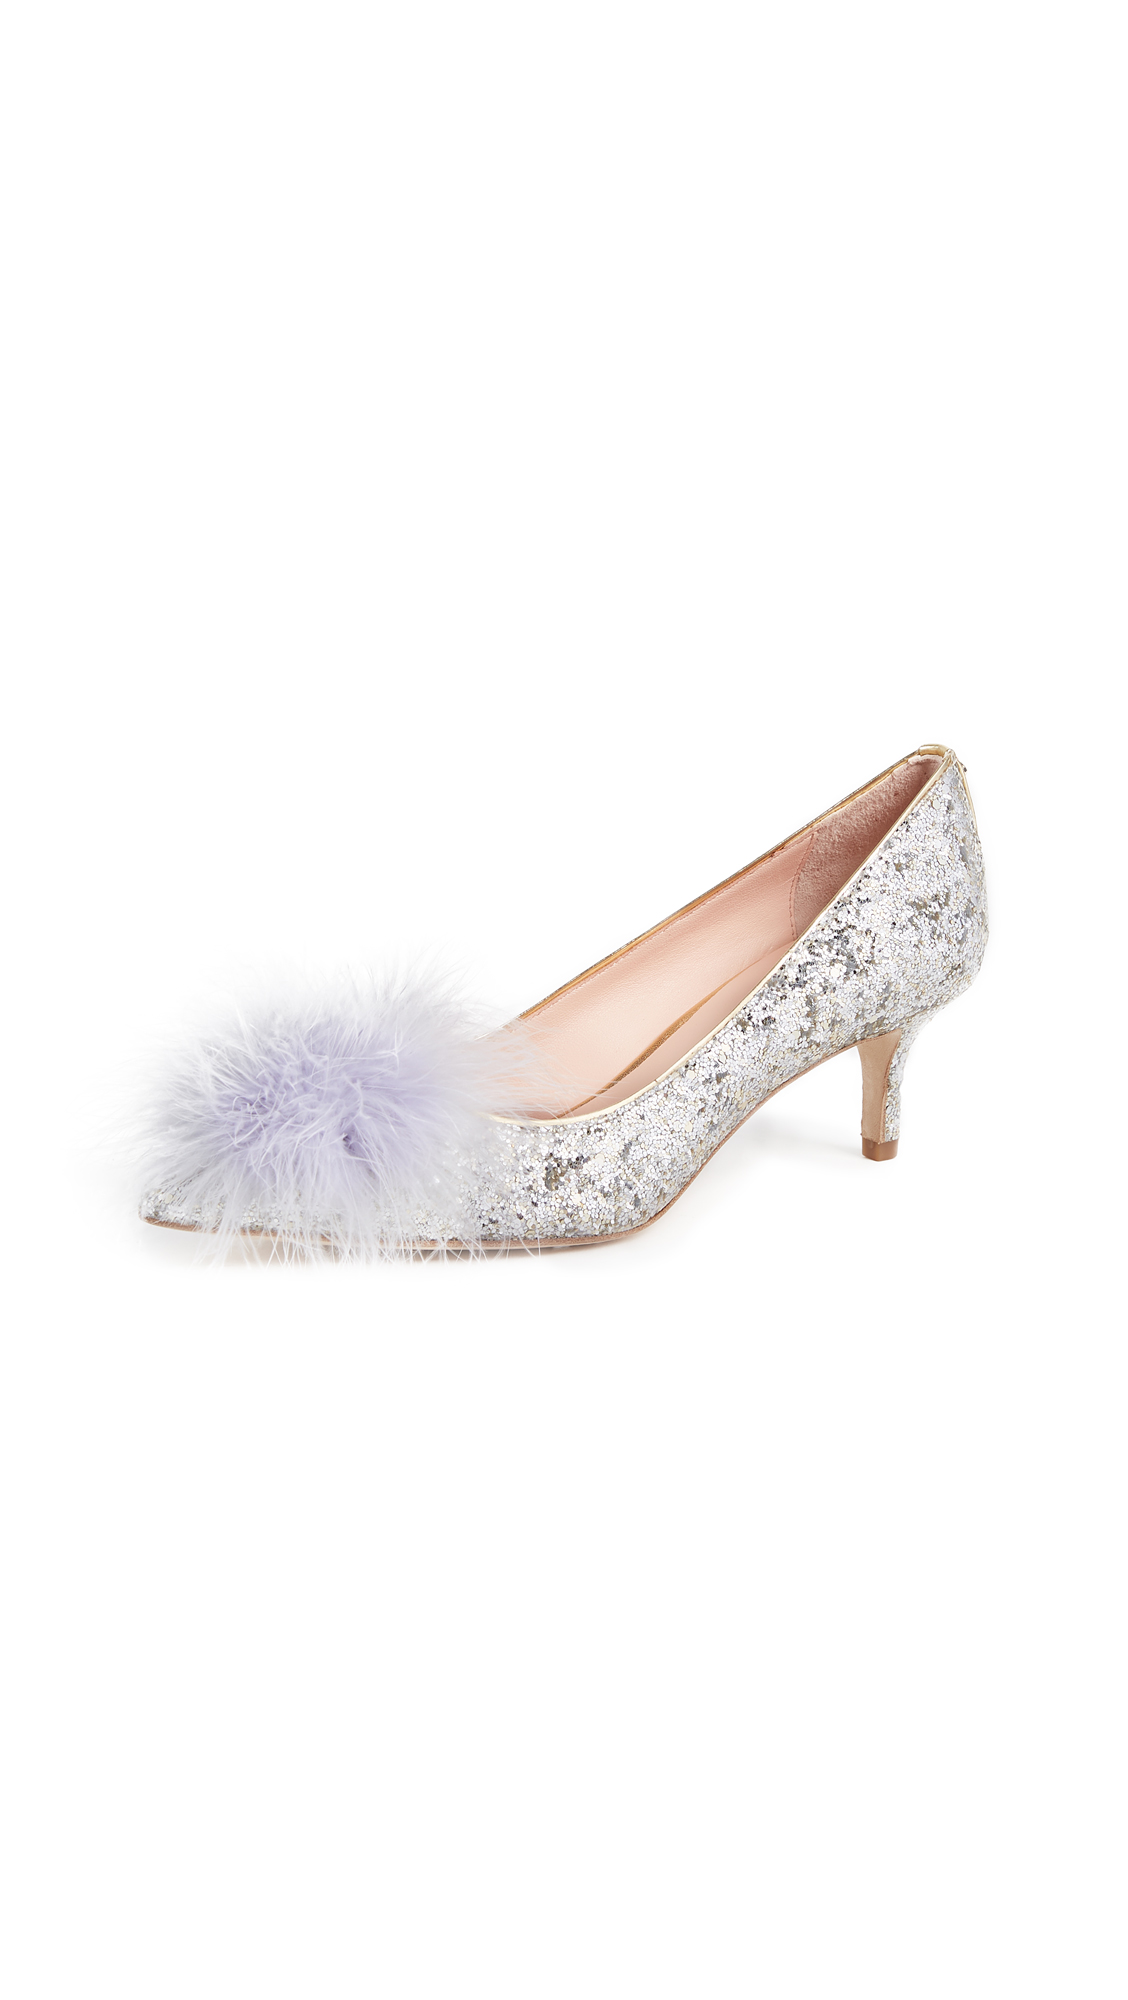 Kate Spade New York Park Pom Pom Pumps - Silver/Gold